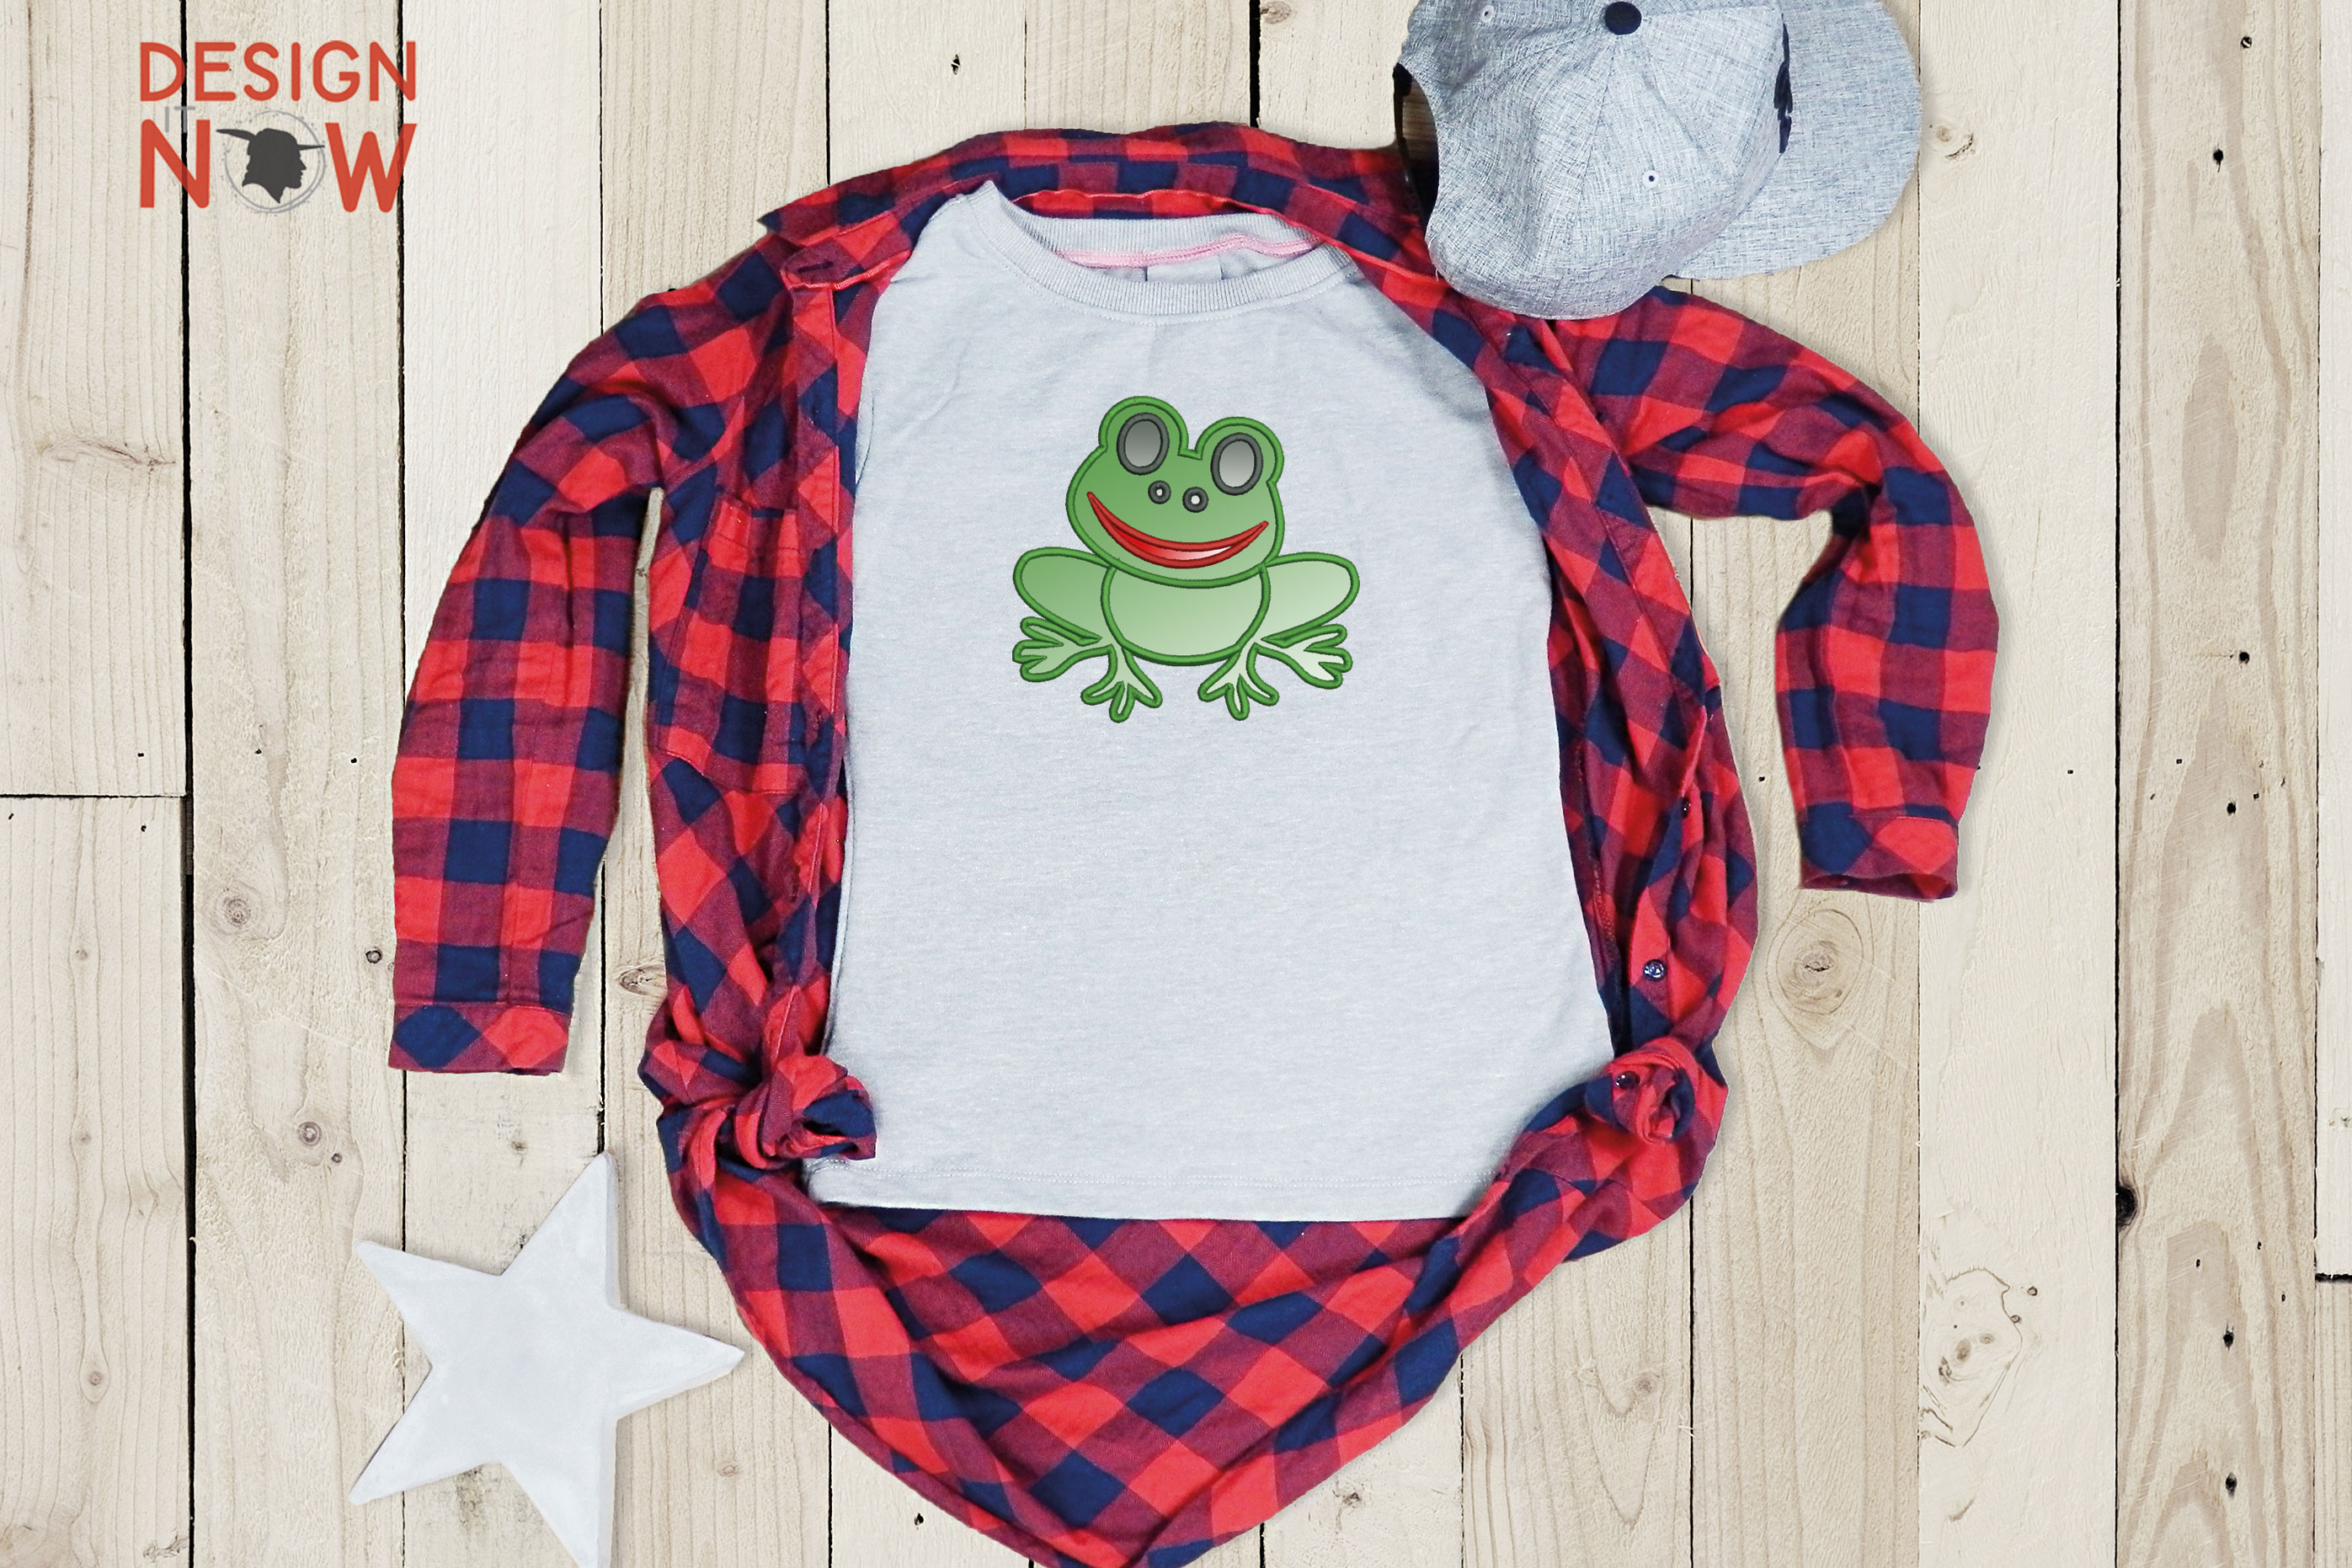 Frog Applique Embroidery Design, Embroidery Pattern example image 2